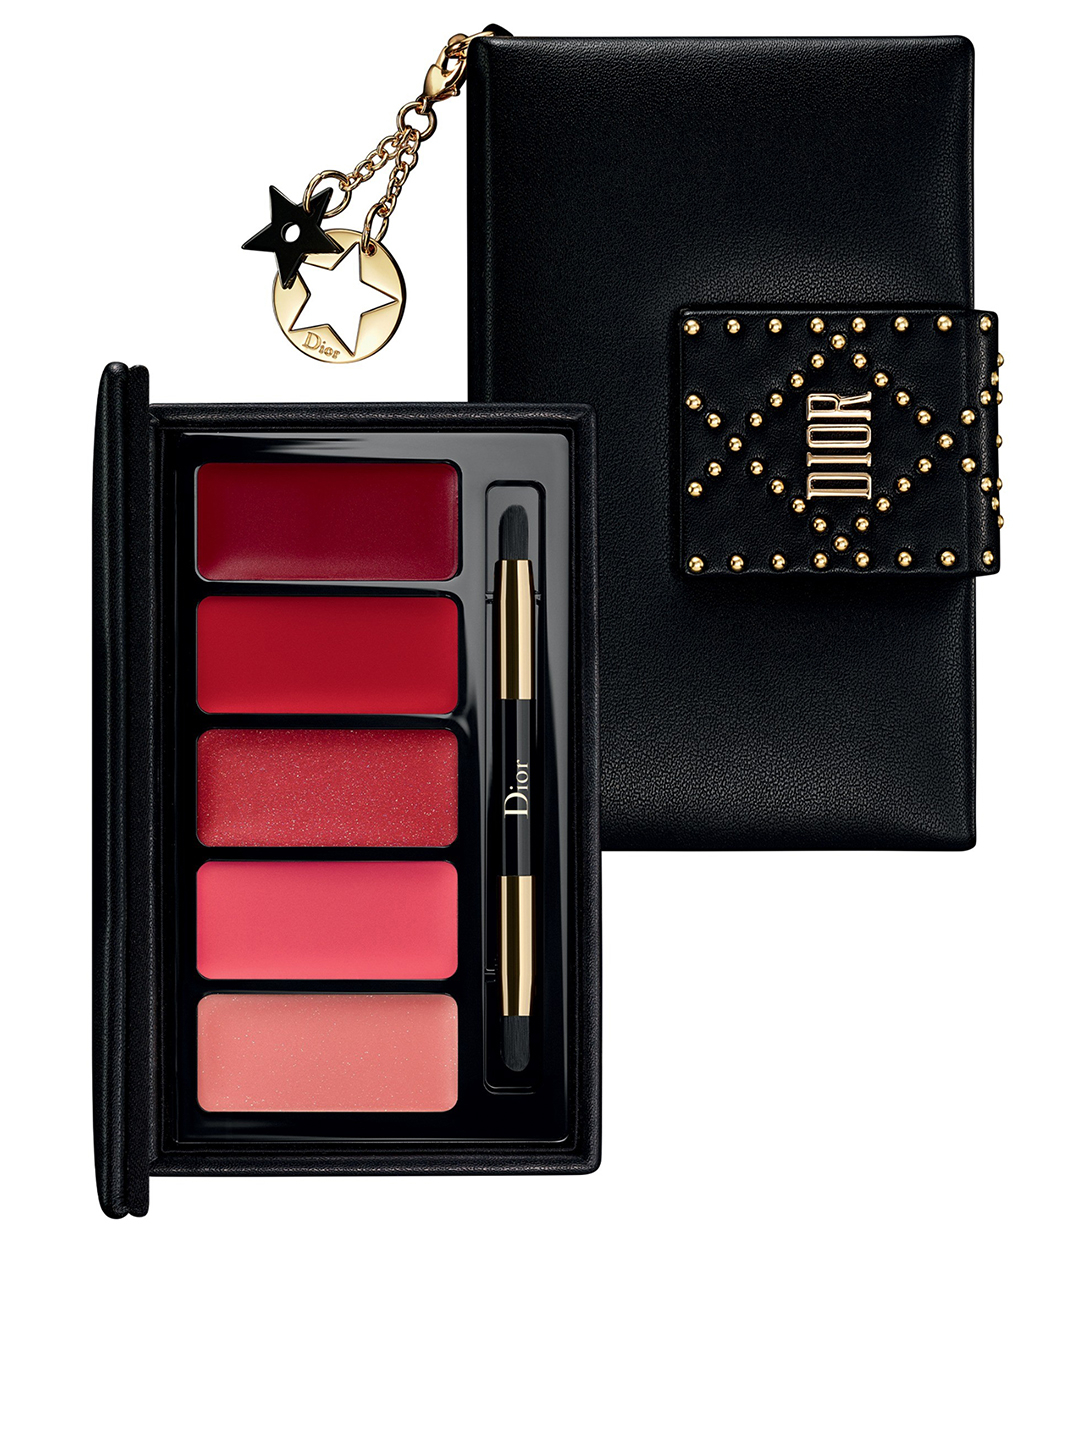 DIOR Daring Lip Palette Beauty